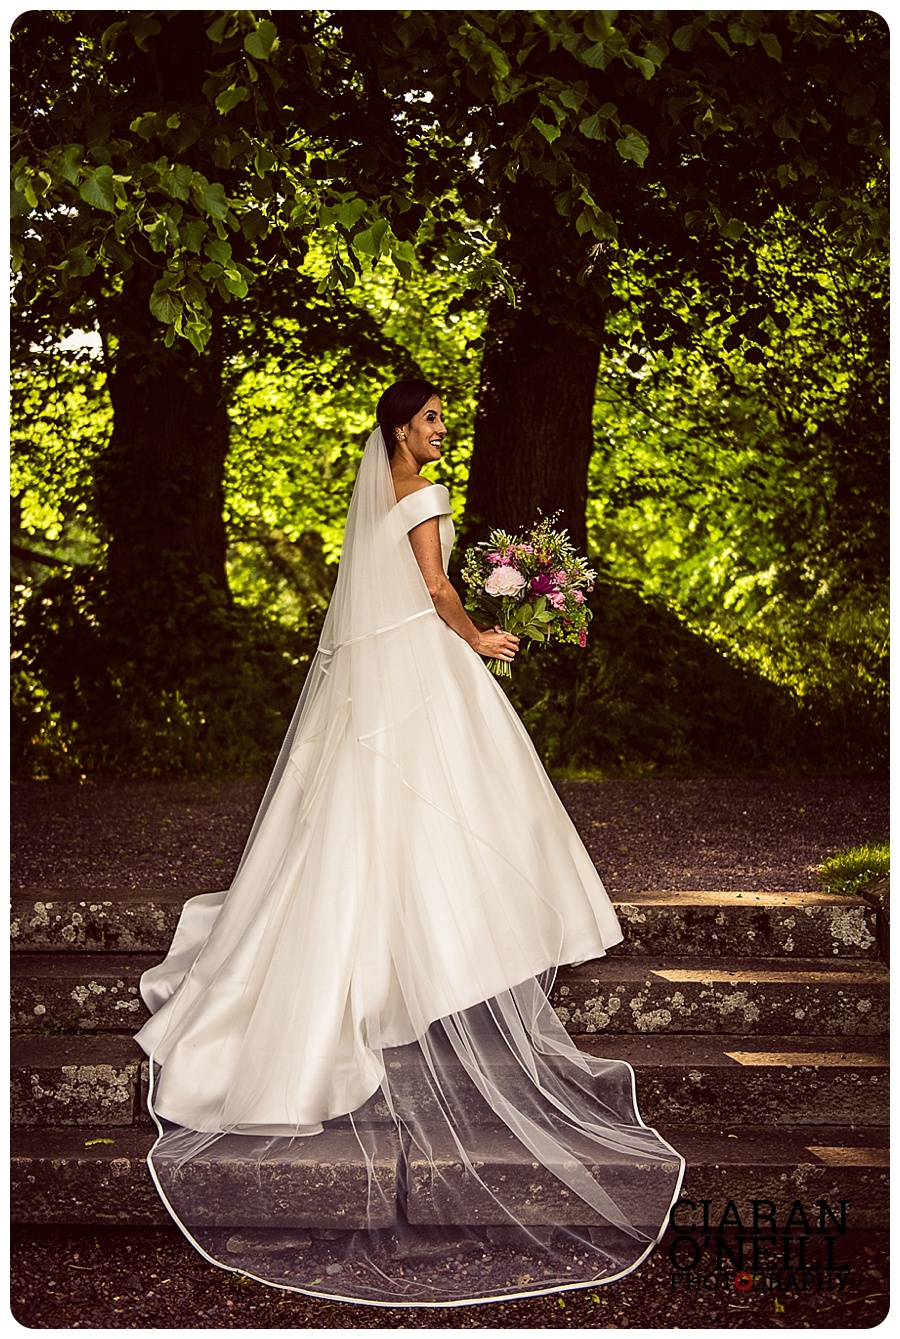 Oonagh & Matthew's wedding at Castle Leslie by Ciaran O'Neill Photography